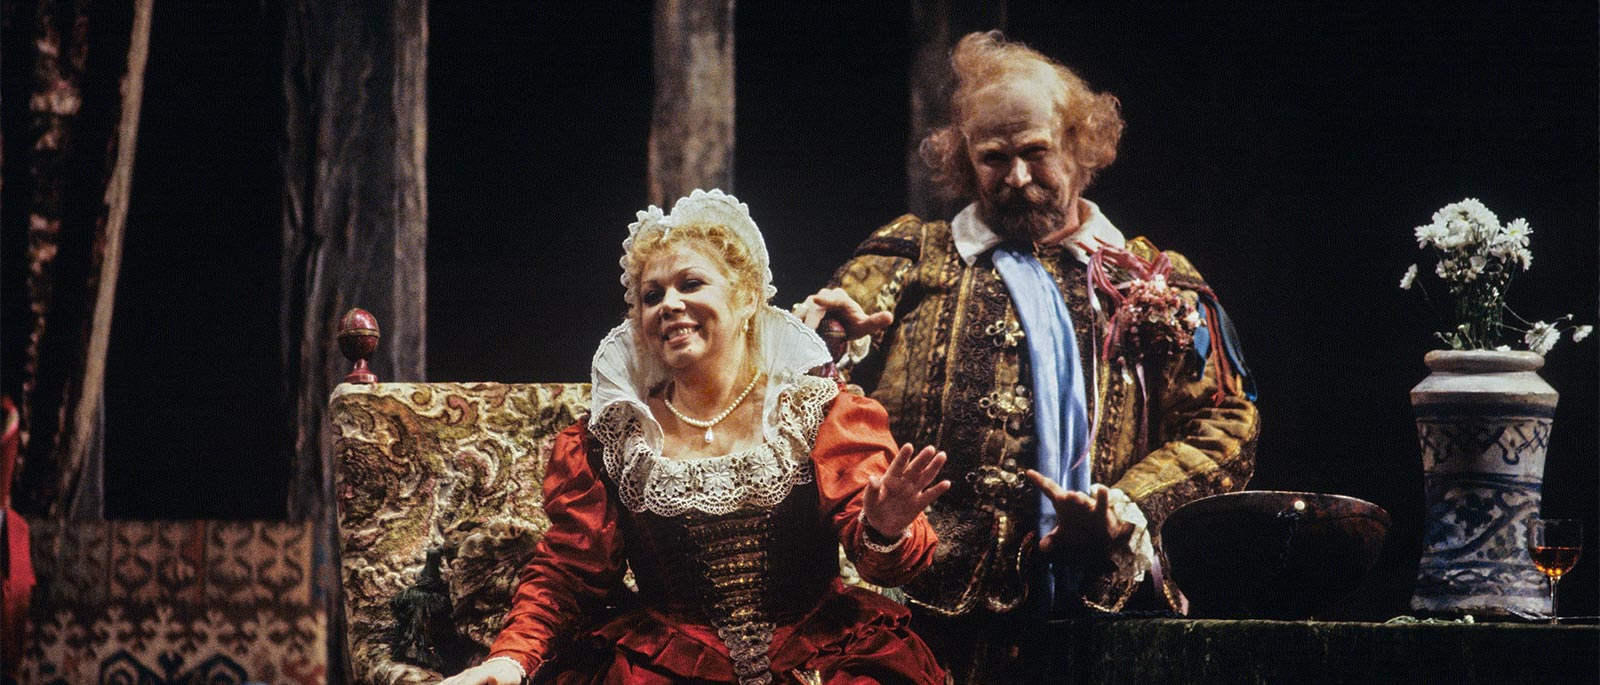 12 1992.09.25.Plishka.Falstaff with Freni_Erika Davidson (3) copy 685.jpg